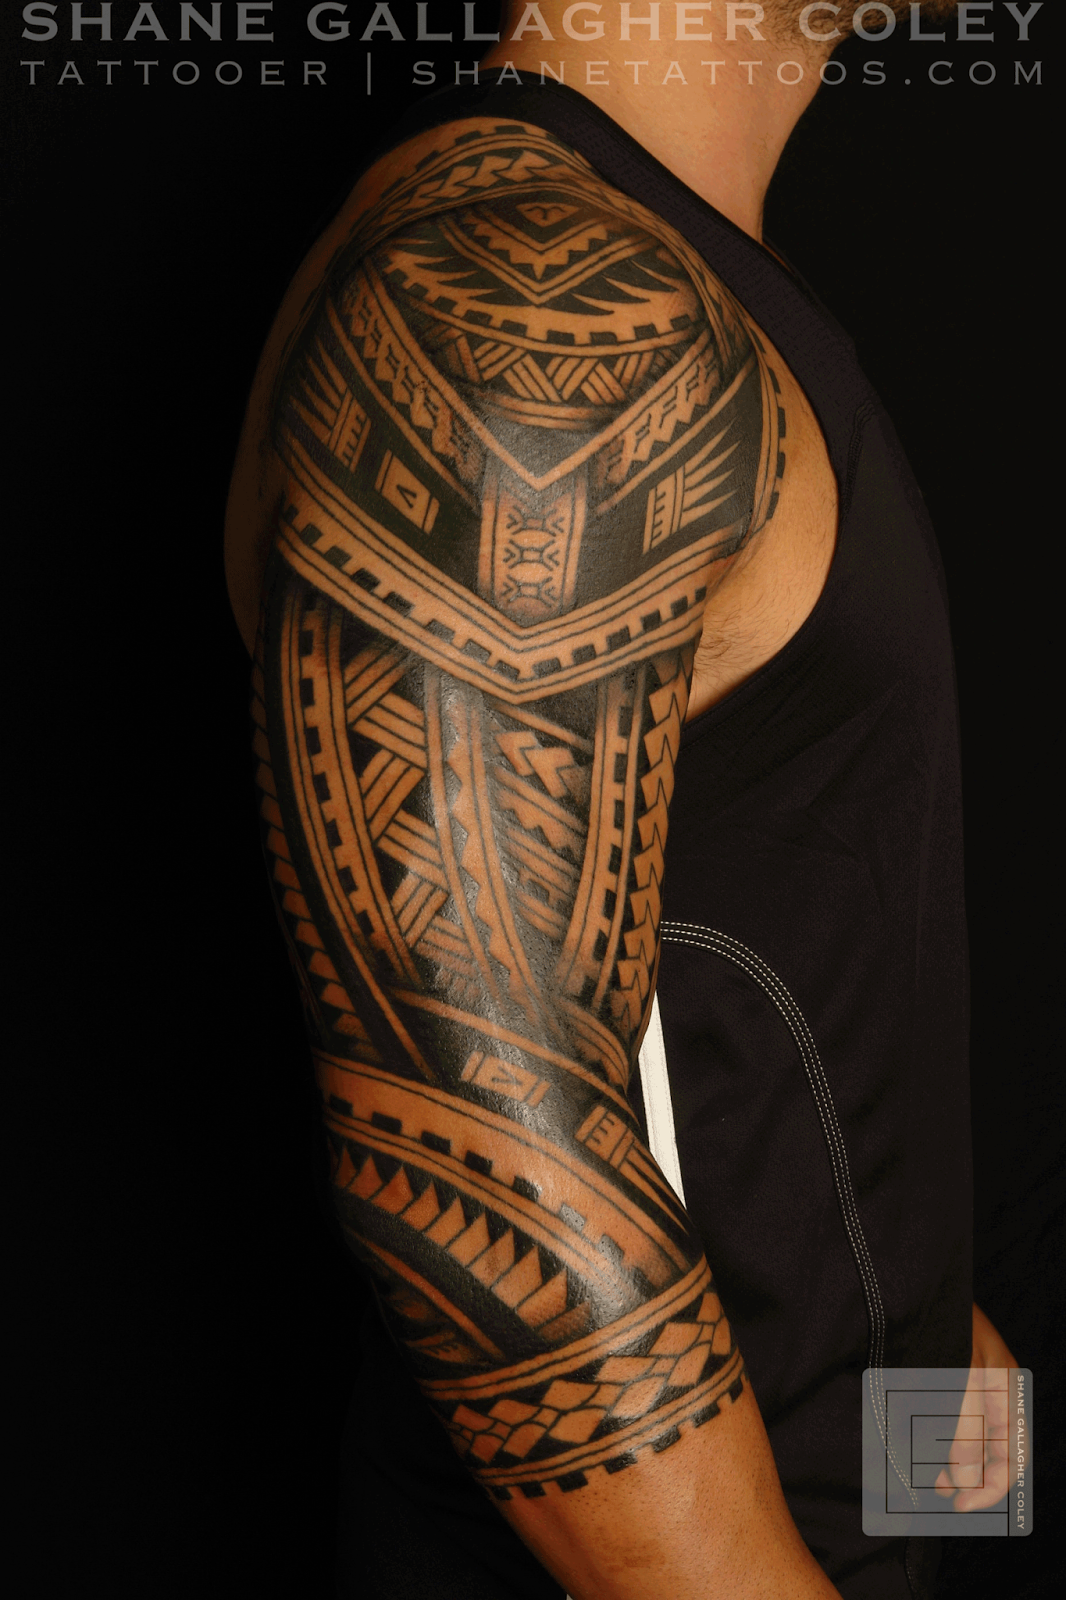 shane tattoos polynesian sleeve tatau tattoo tattoo project pinterest tatau tattoo shane. Black Bedroom Furniture Sets. Home Design Ideas